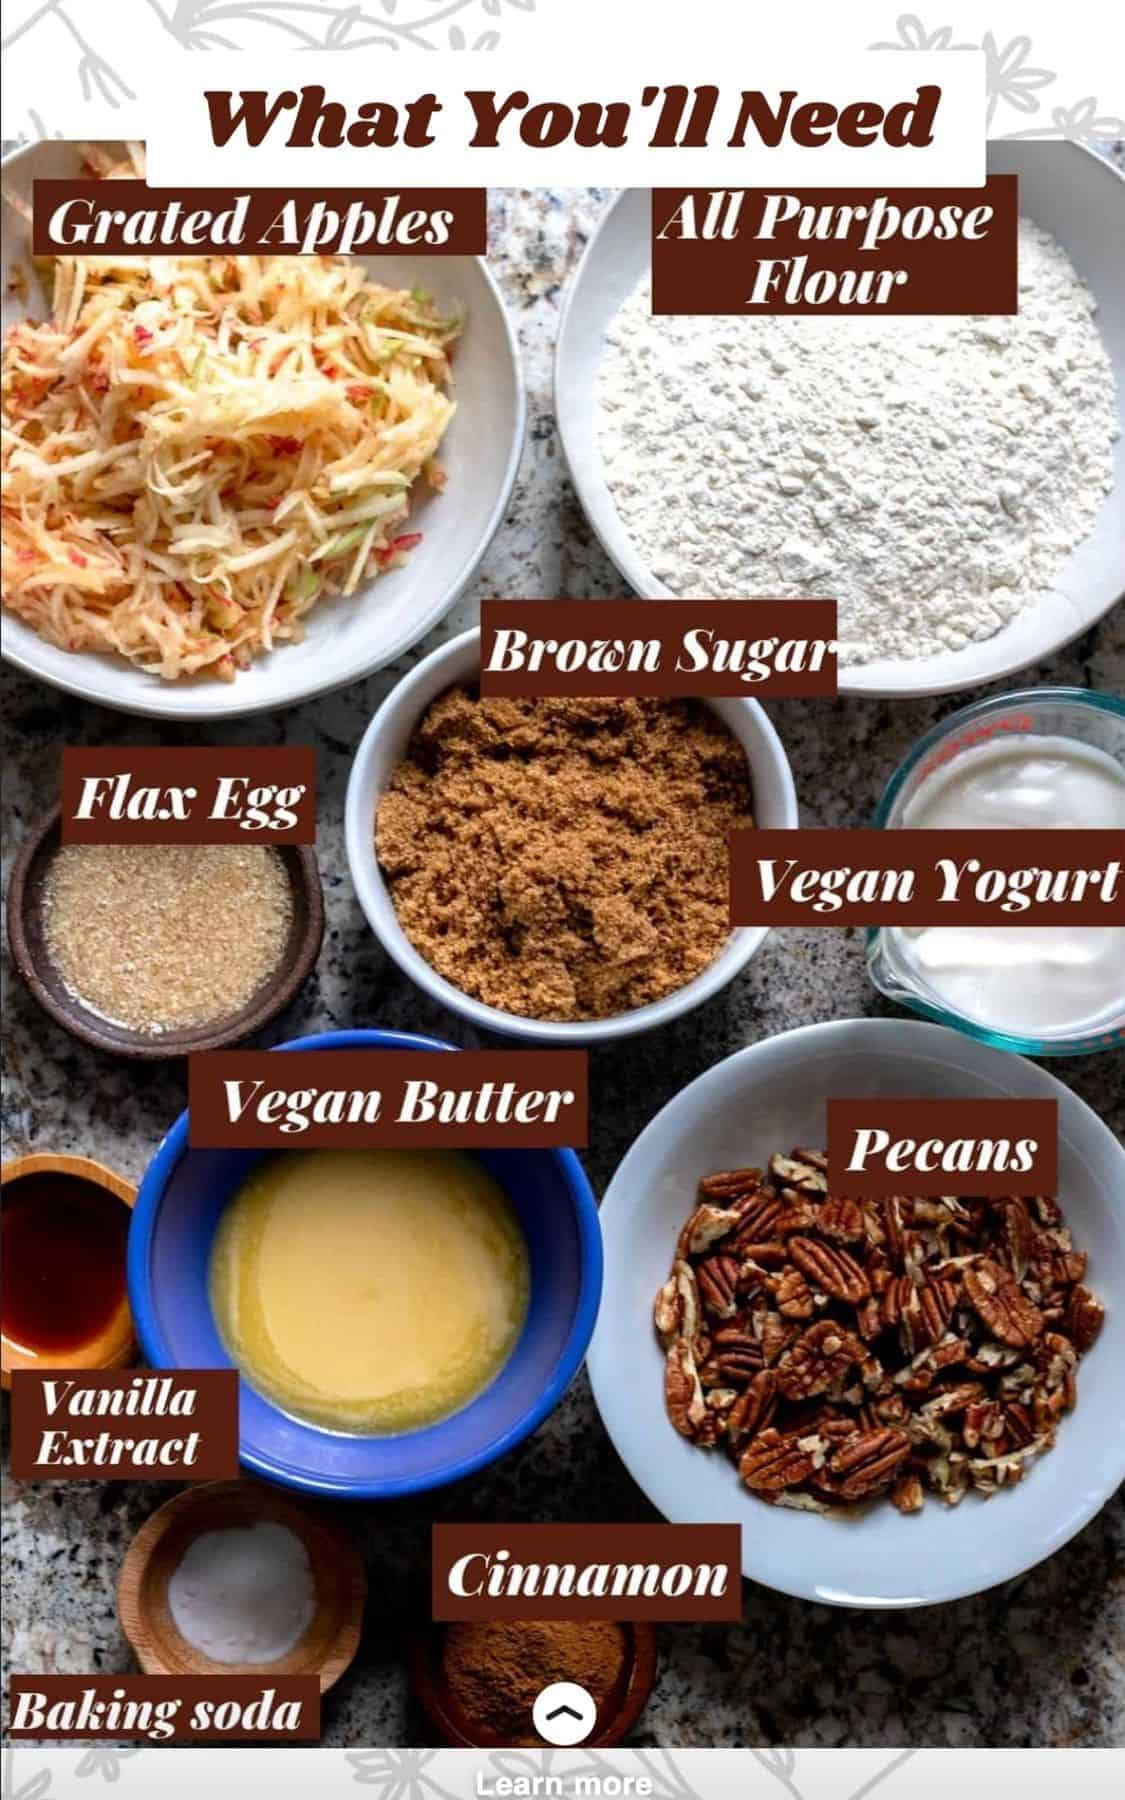 Ingredients for Apple Cake measured out into individual bowls.